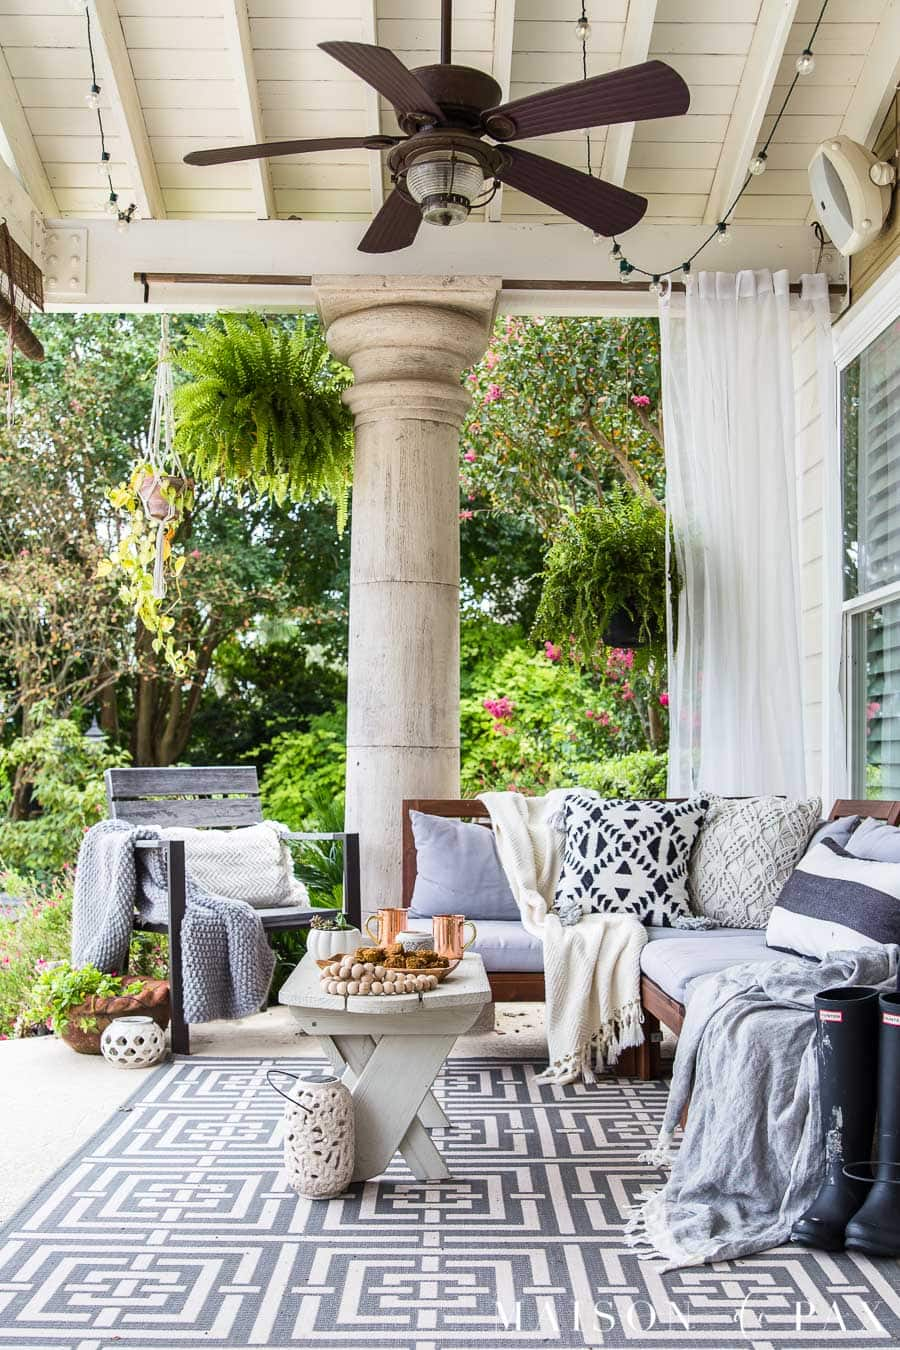 Redecoration Ideas Get easy fall decorating ideas like this black and white porch! #falldecor  #falldecorating